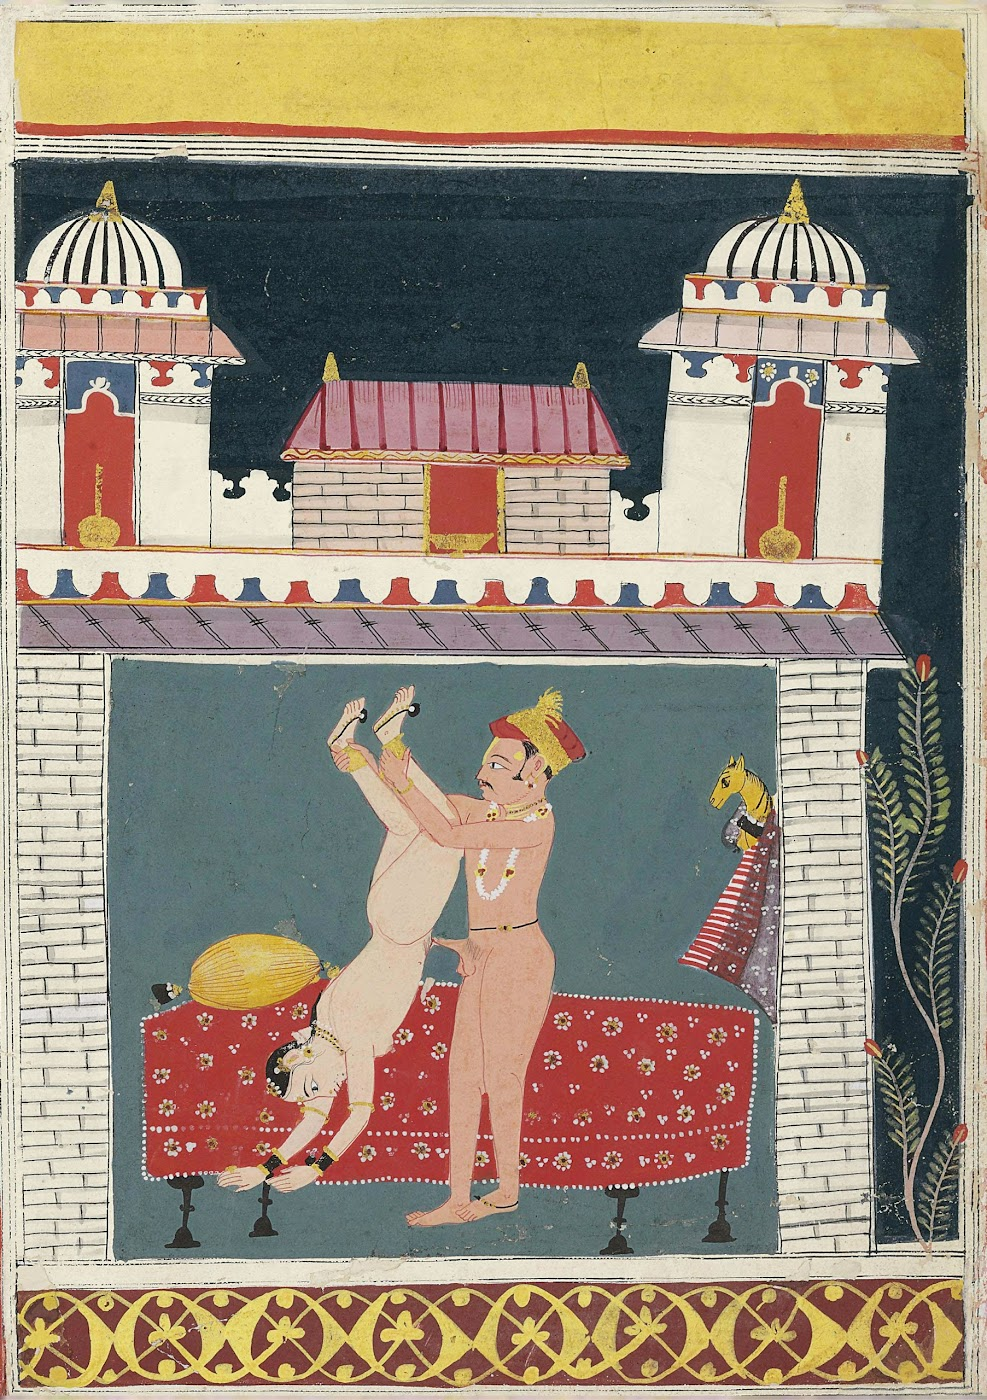 Couple in a Lovemaking Embrace - Miniature Painting, Malwa, Circa 1680-90